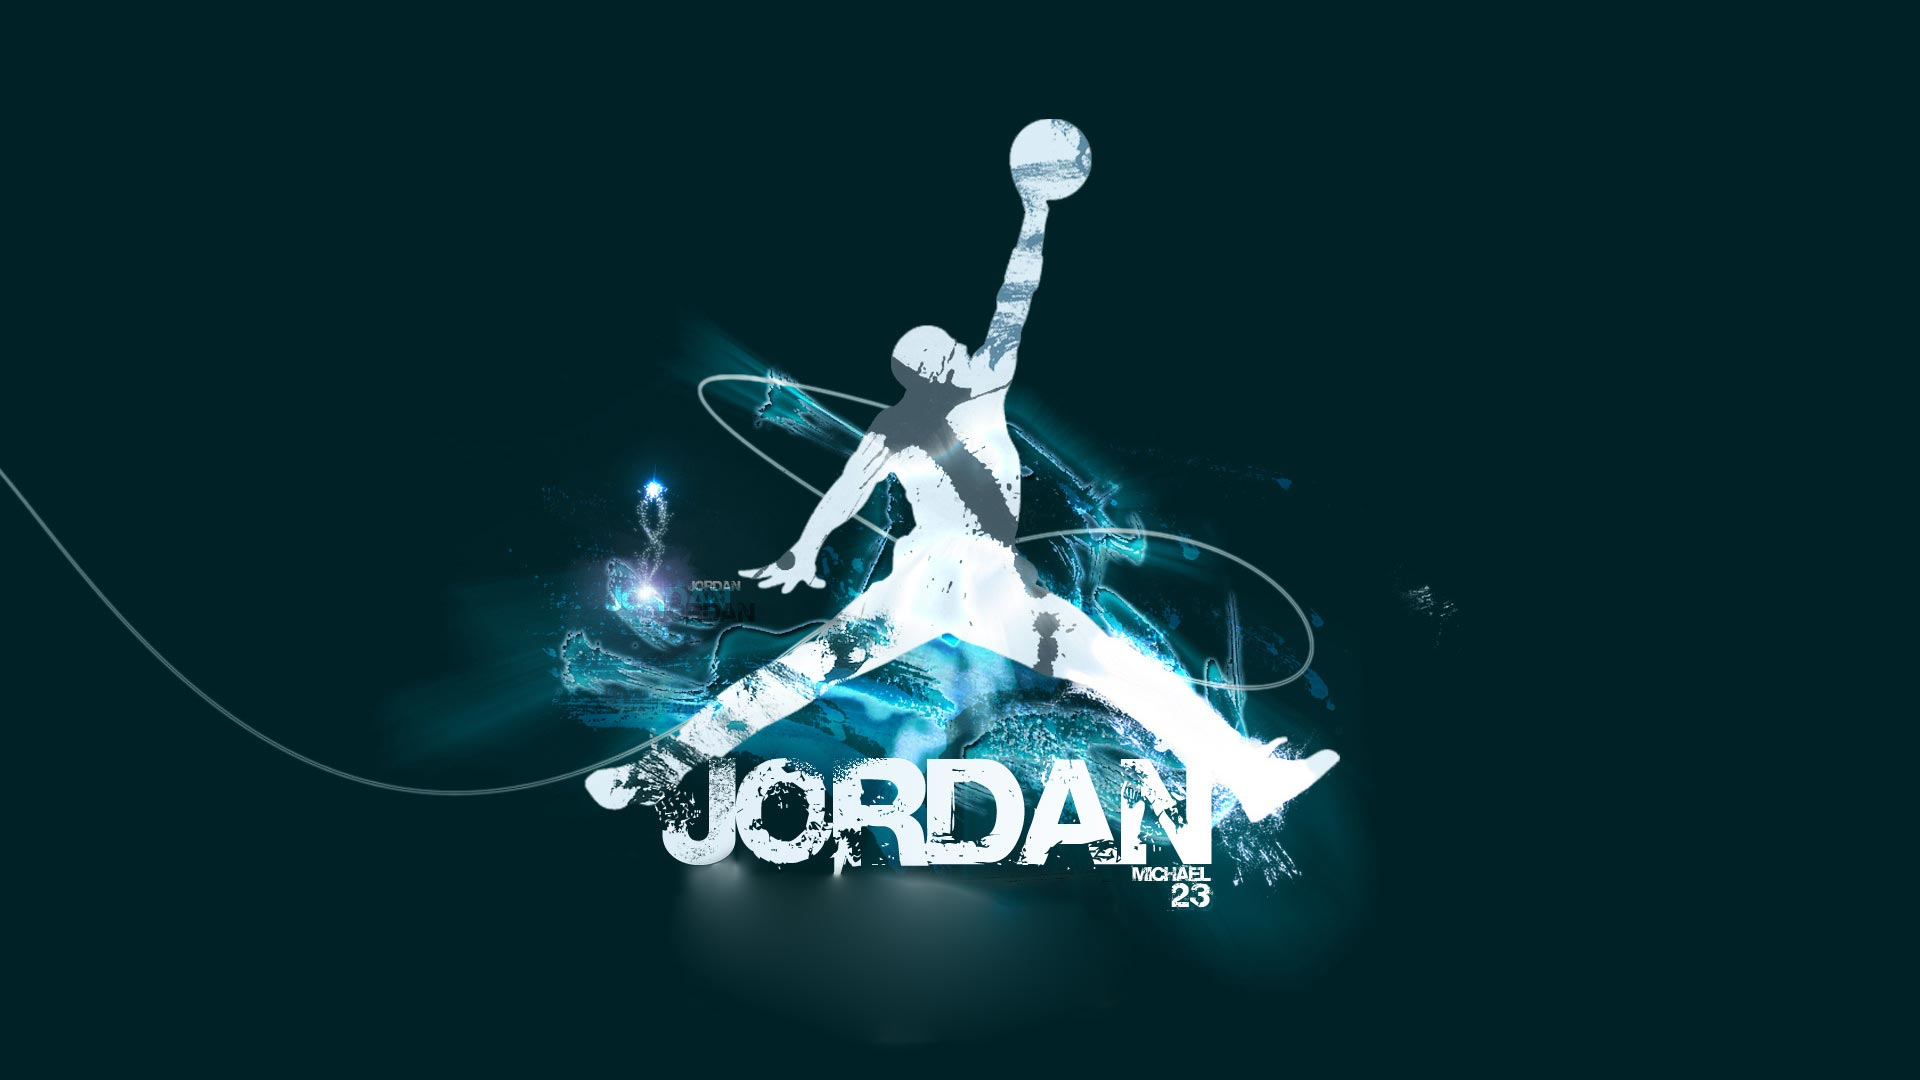 Jordan Logo Wallpaper Hd Pixelstalk Net